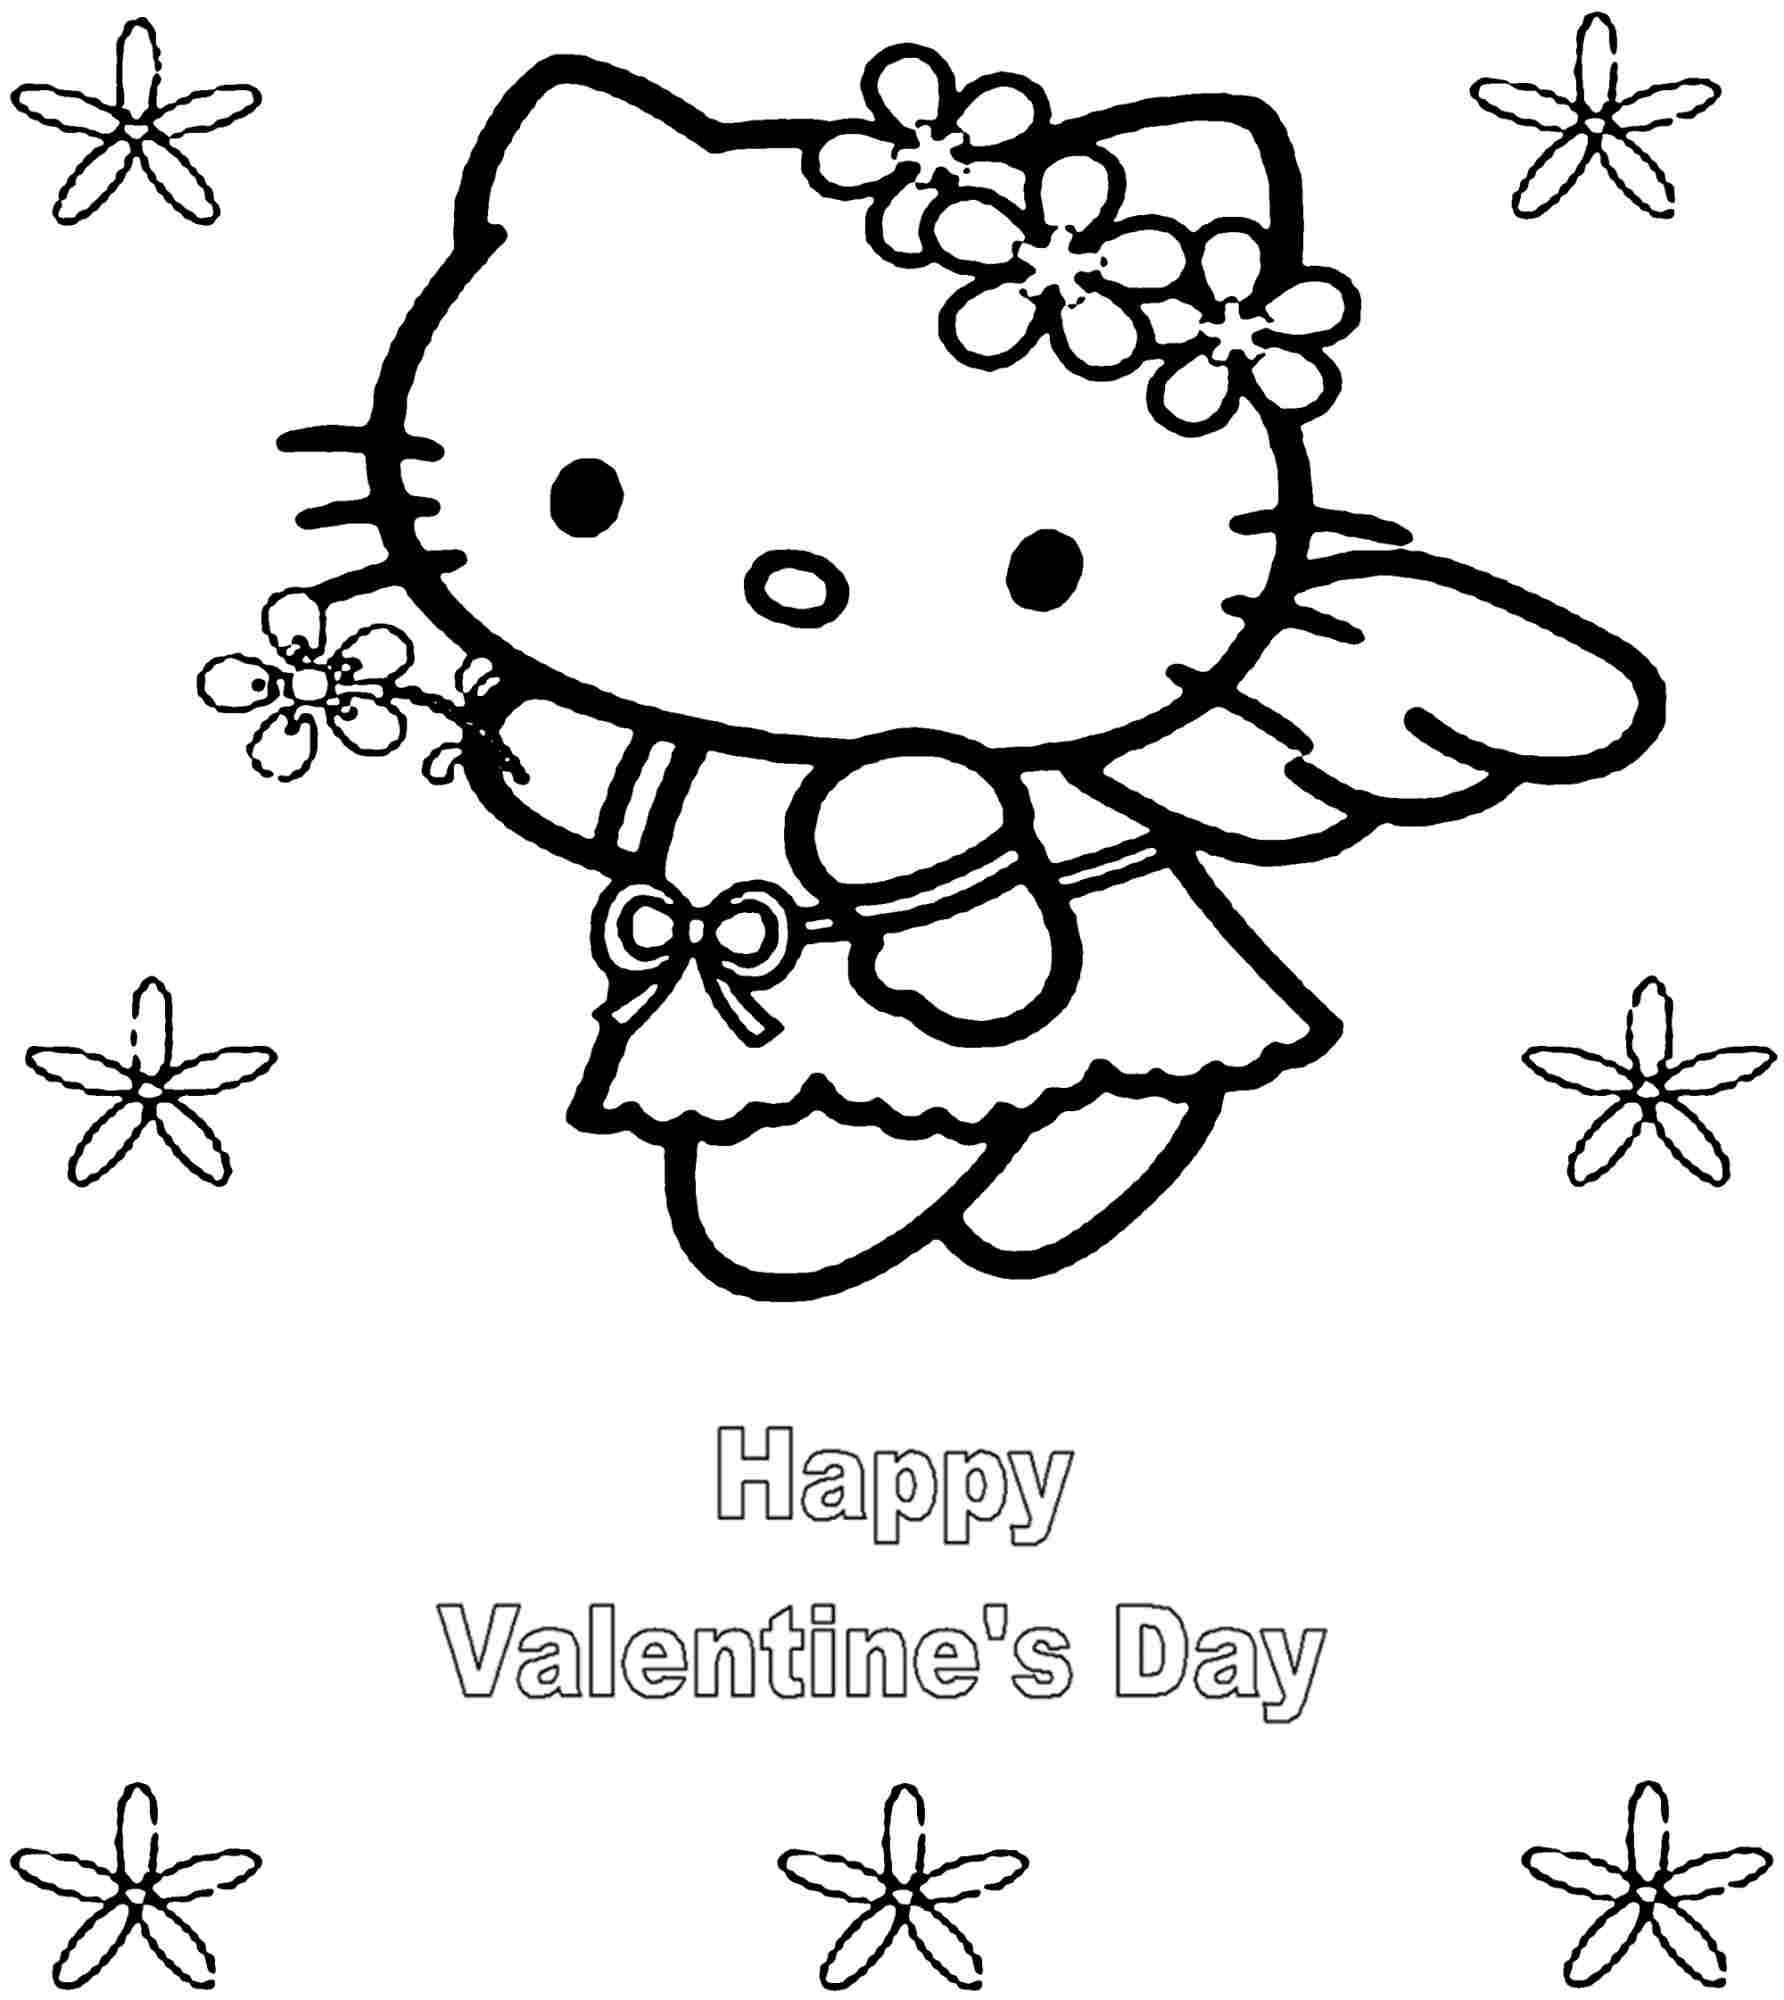 math coloring pages 2 coloring kids valentines day addition - Name Coloring Pages 2